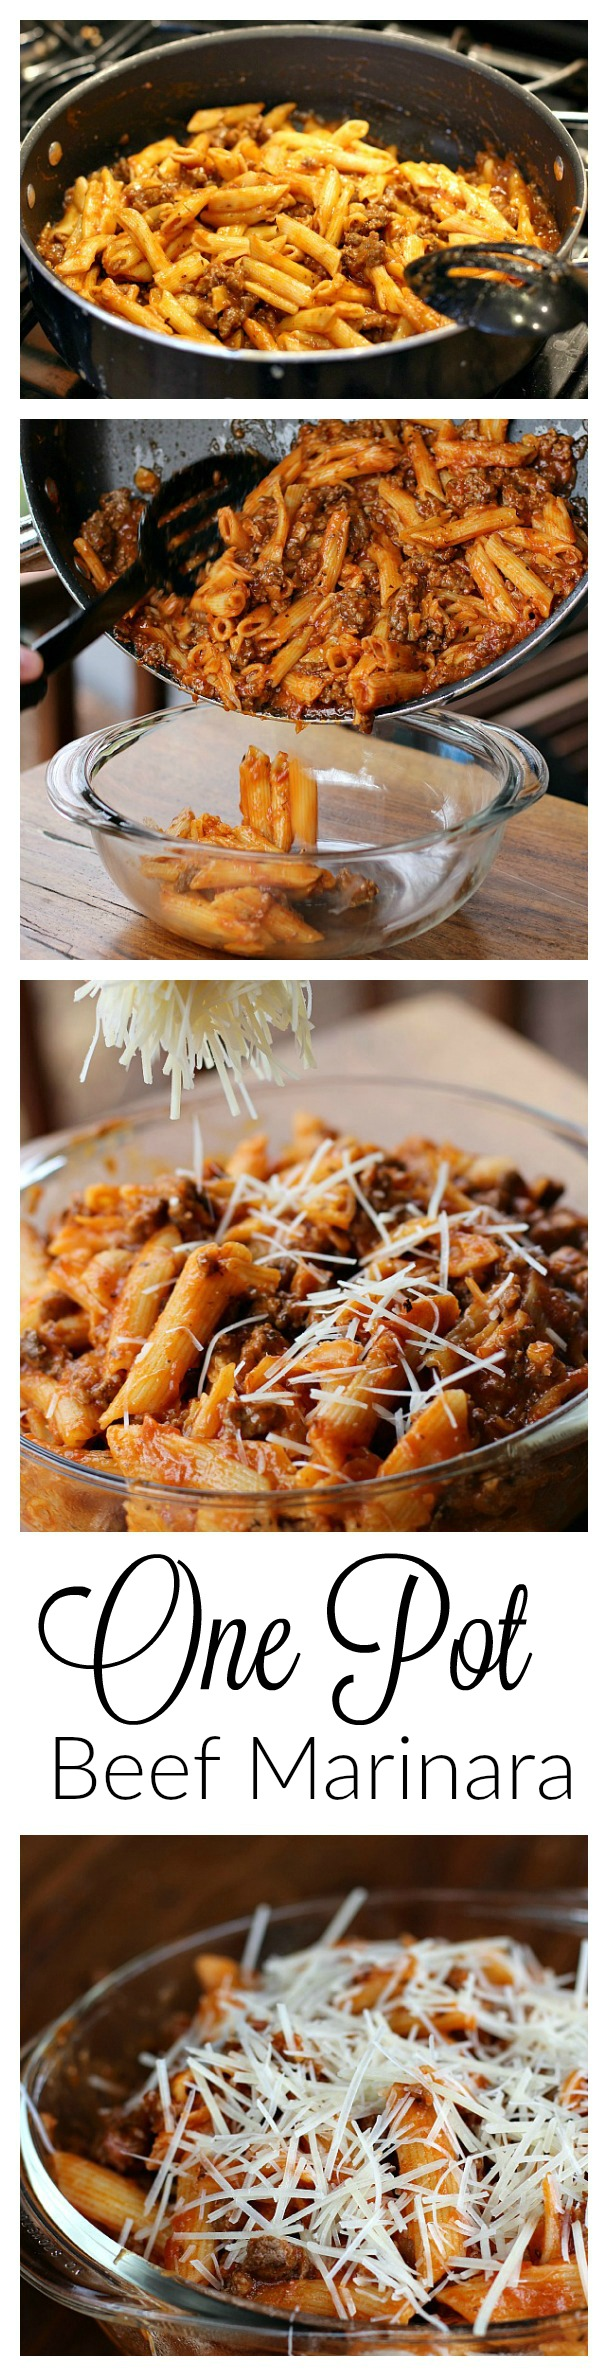 One Pot Beef Marinara Collage